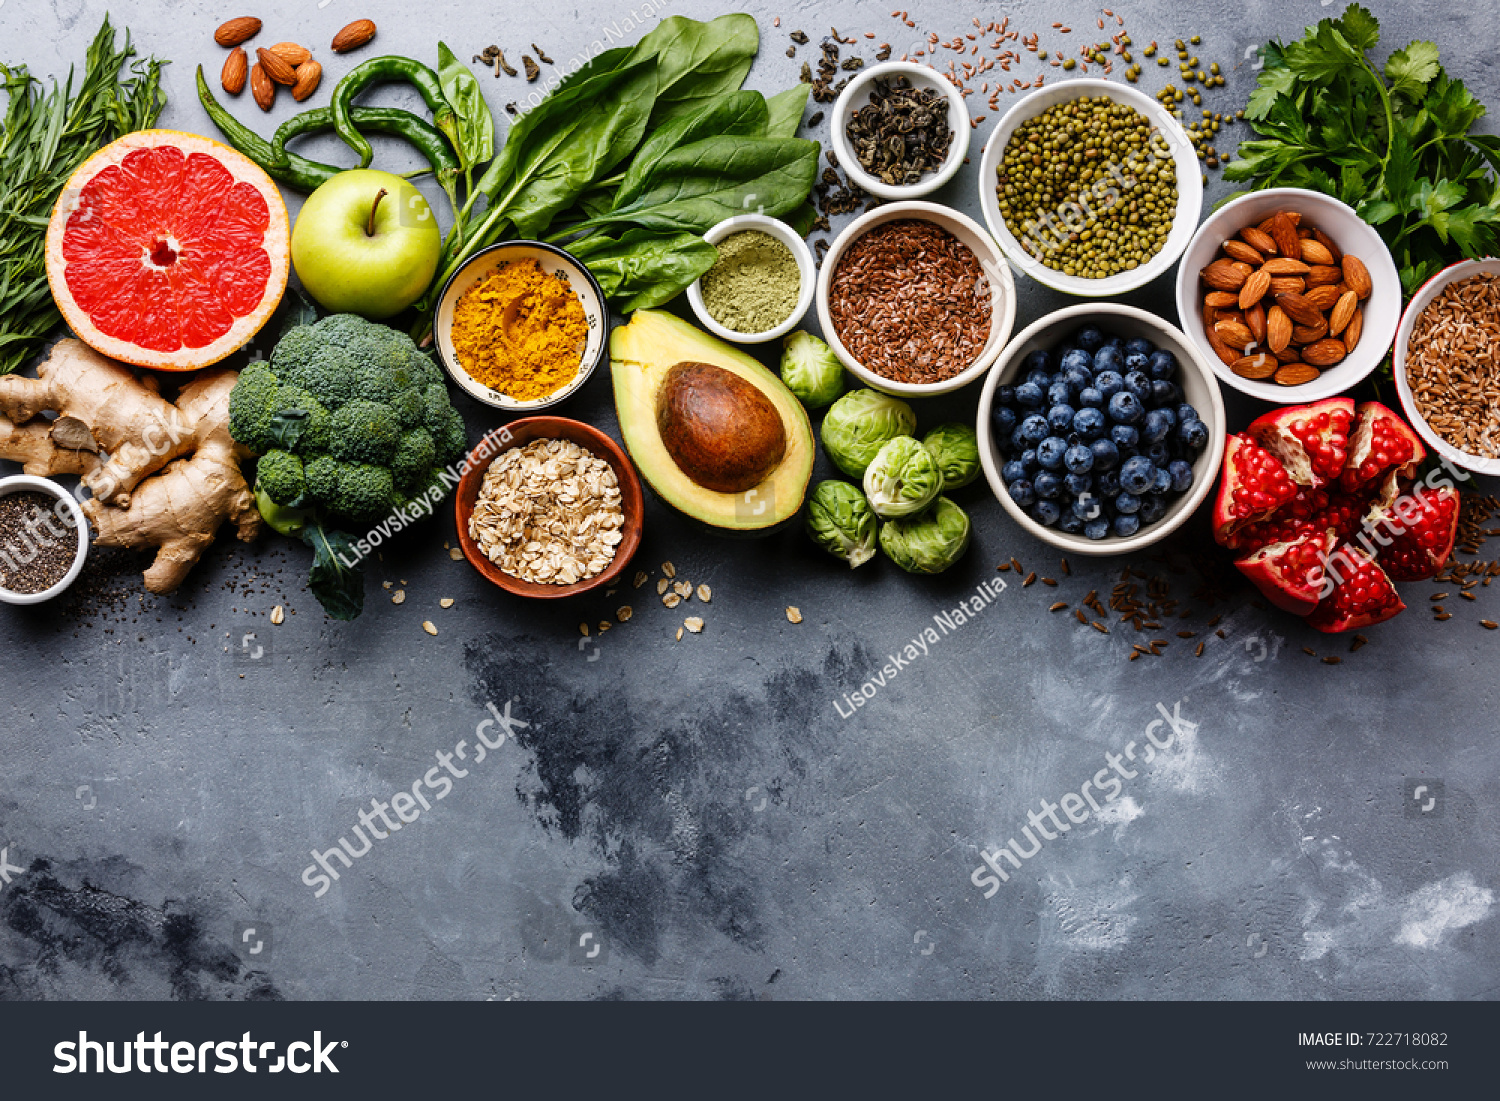 Healthy food clean eating selection: fruit, vegetable, seeds, superfood, cereals, leaf vegetable on gray concrete background copy space #722718082